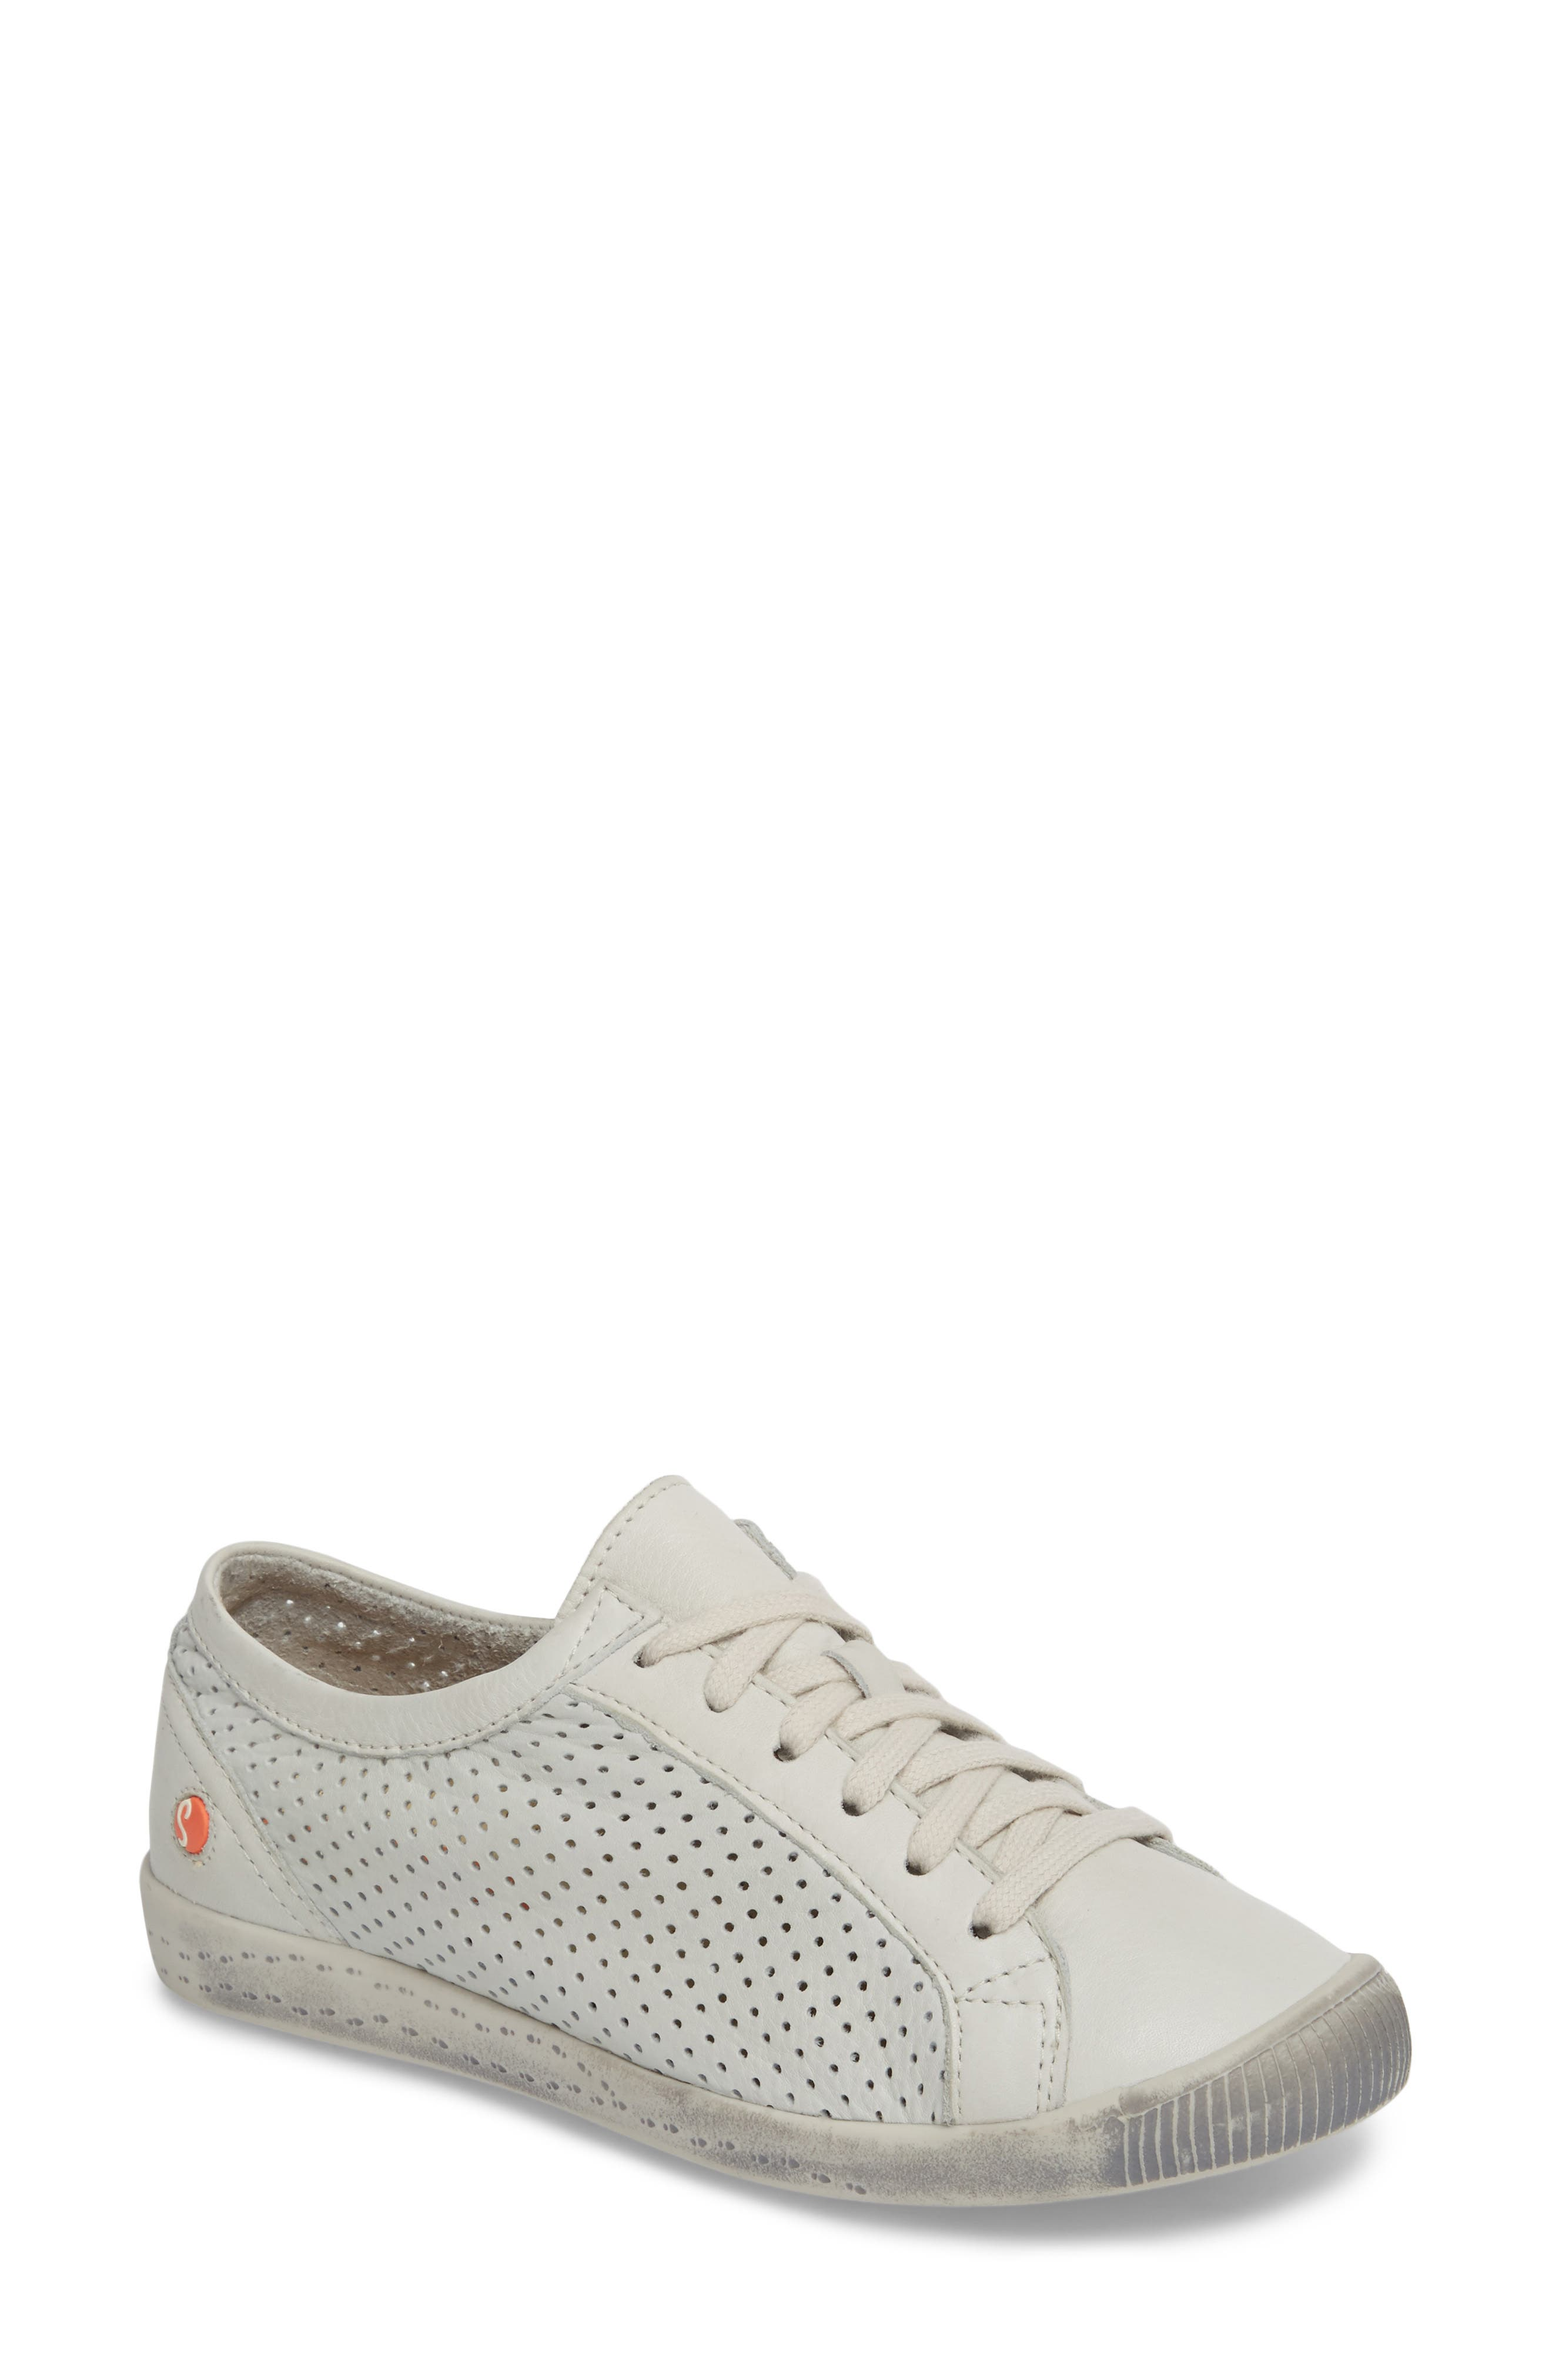 Ica Sneaker,                         Main,                         color, WHITE LEATHER